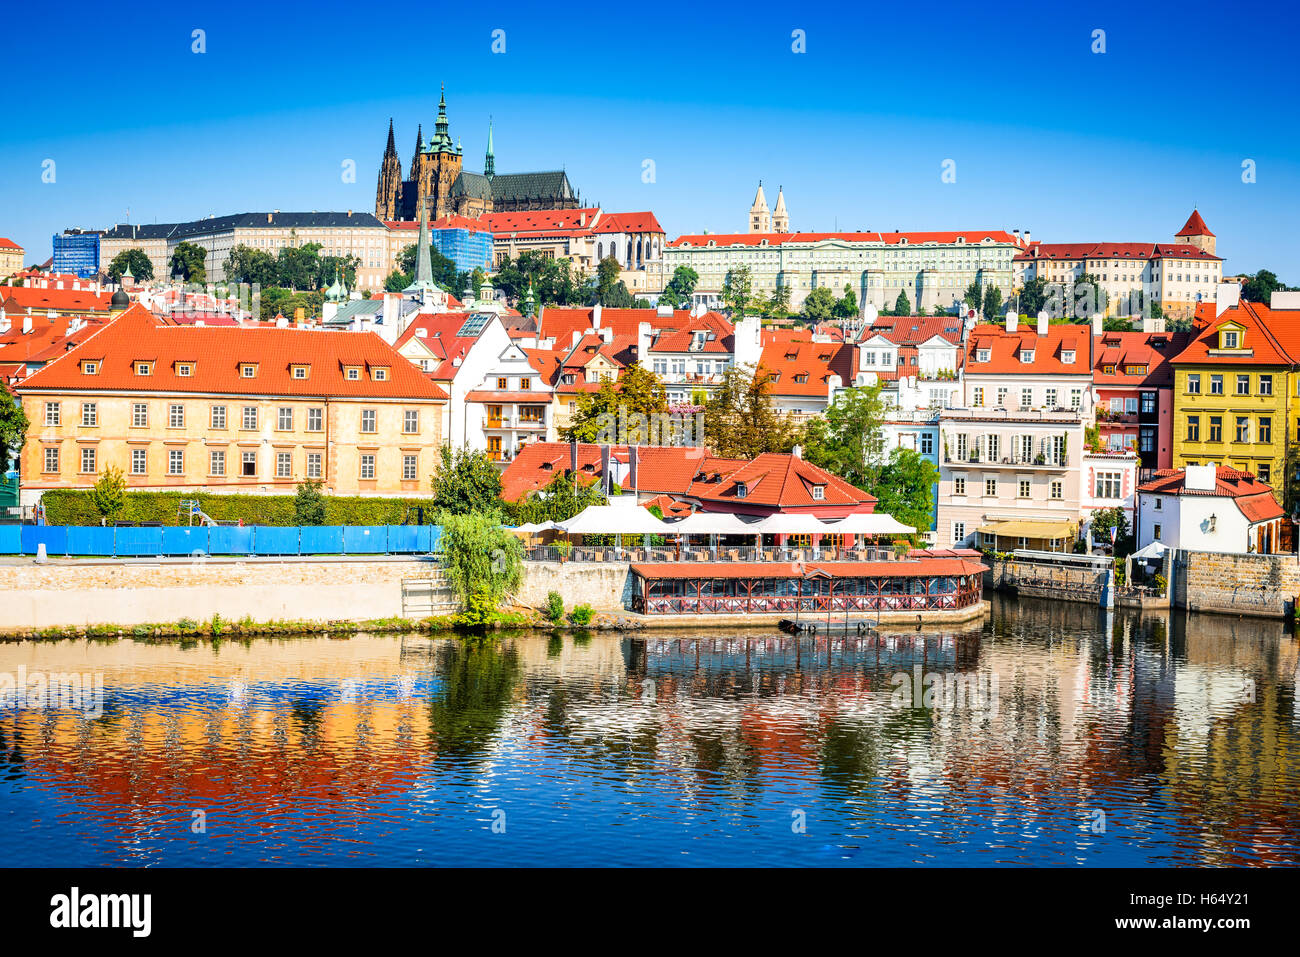 Prague, Bohemia, Czech Republic. Hradcany is the Praha Castle with churches, chapels, halls and towers from every - Stock Image